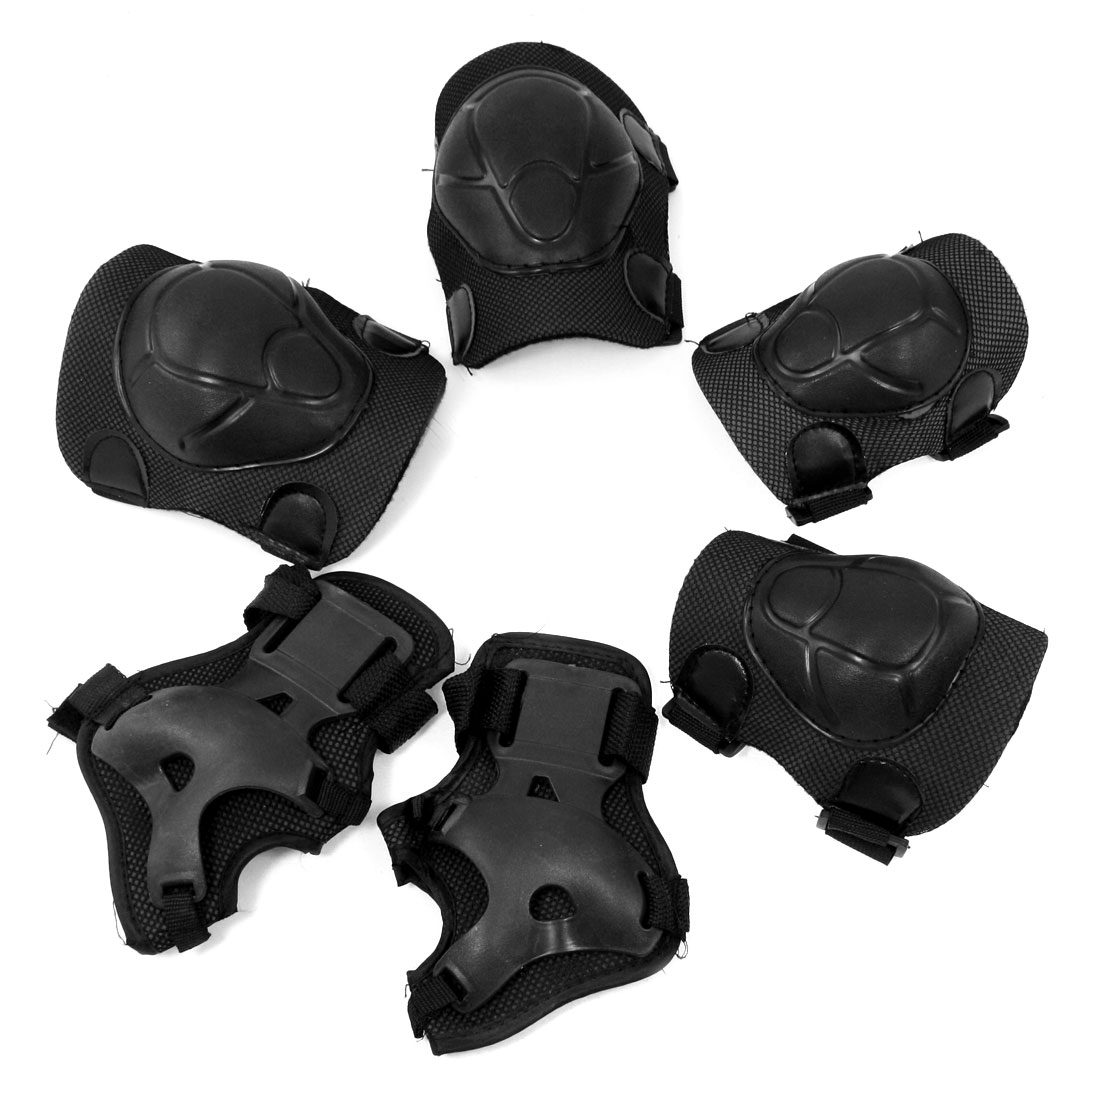 Skating Protecting Knee Elbow Palm Support Set Black for Kid